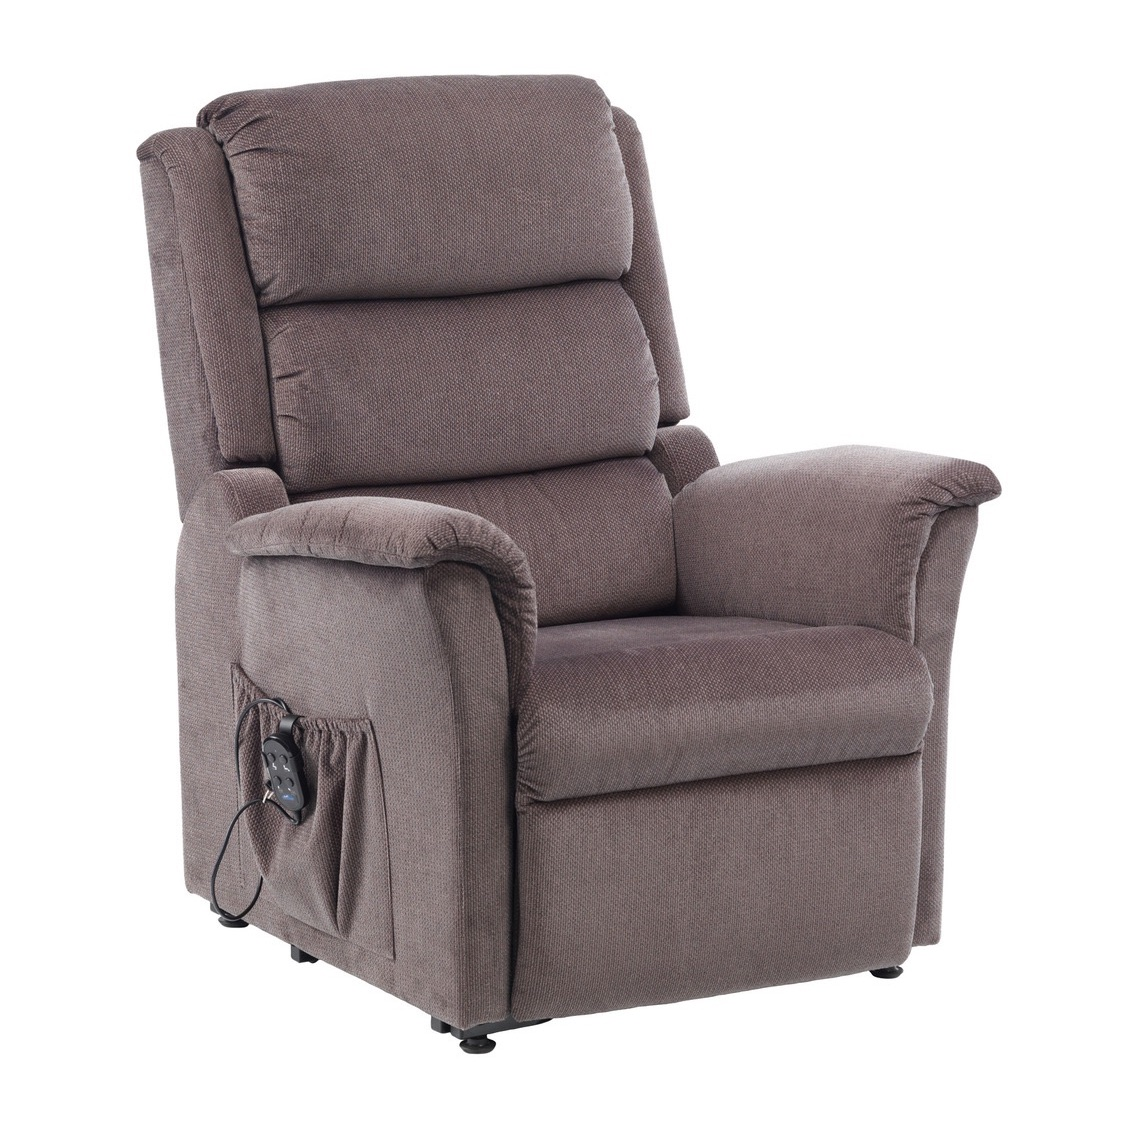 Rise Recliner - Restwell - Portland - Dual Motor -  FREE Delivery, On Sale. While Stocks Last